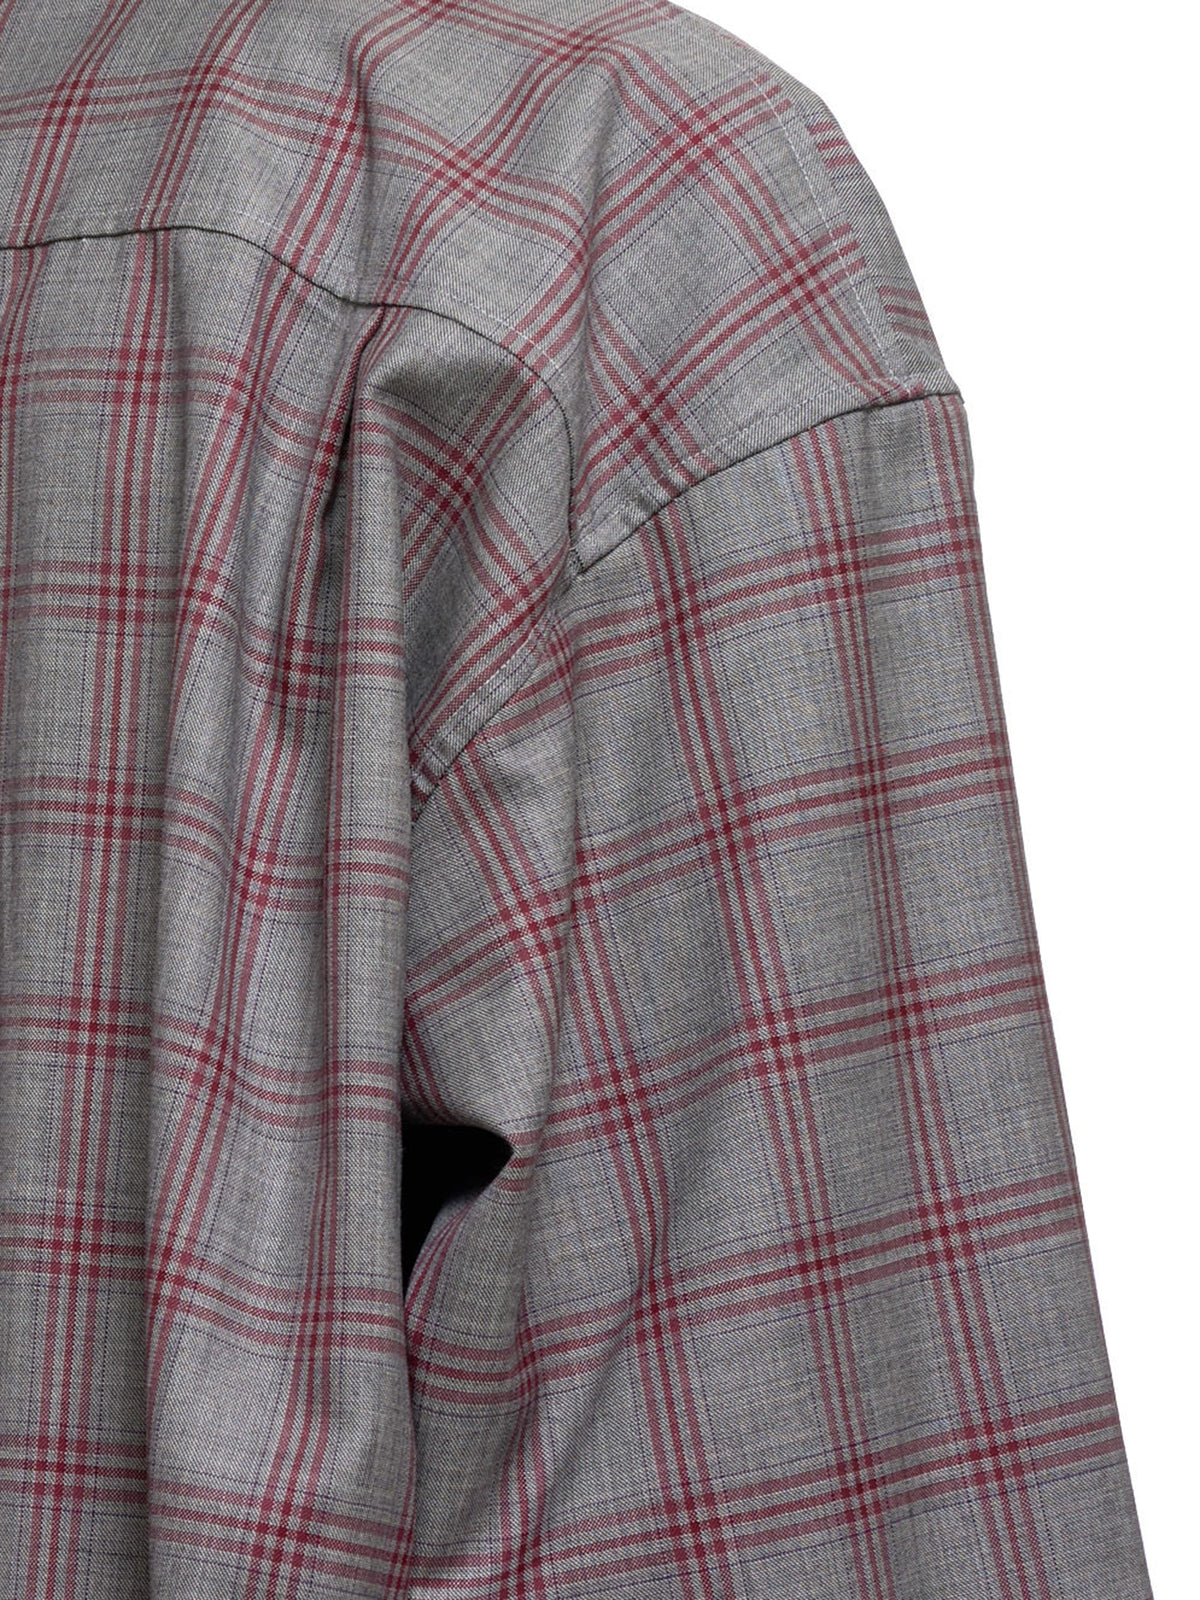 Plaid Punk Shirt (ST45SHT-RED-GRAY)